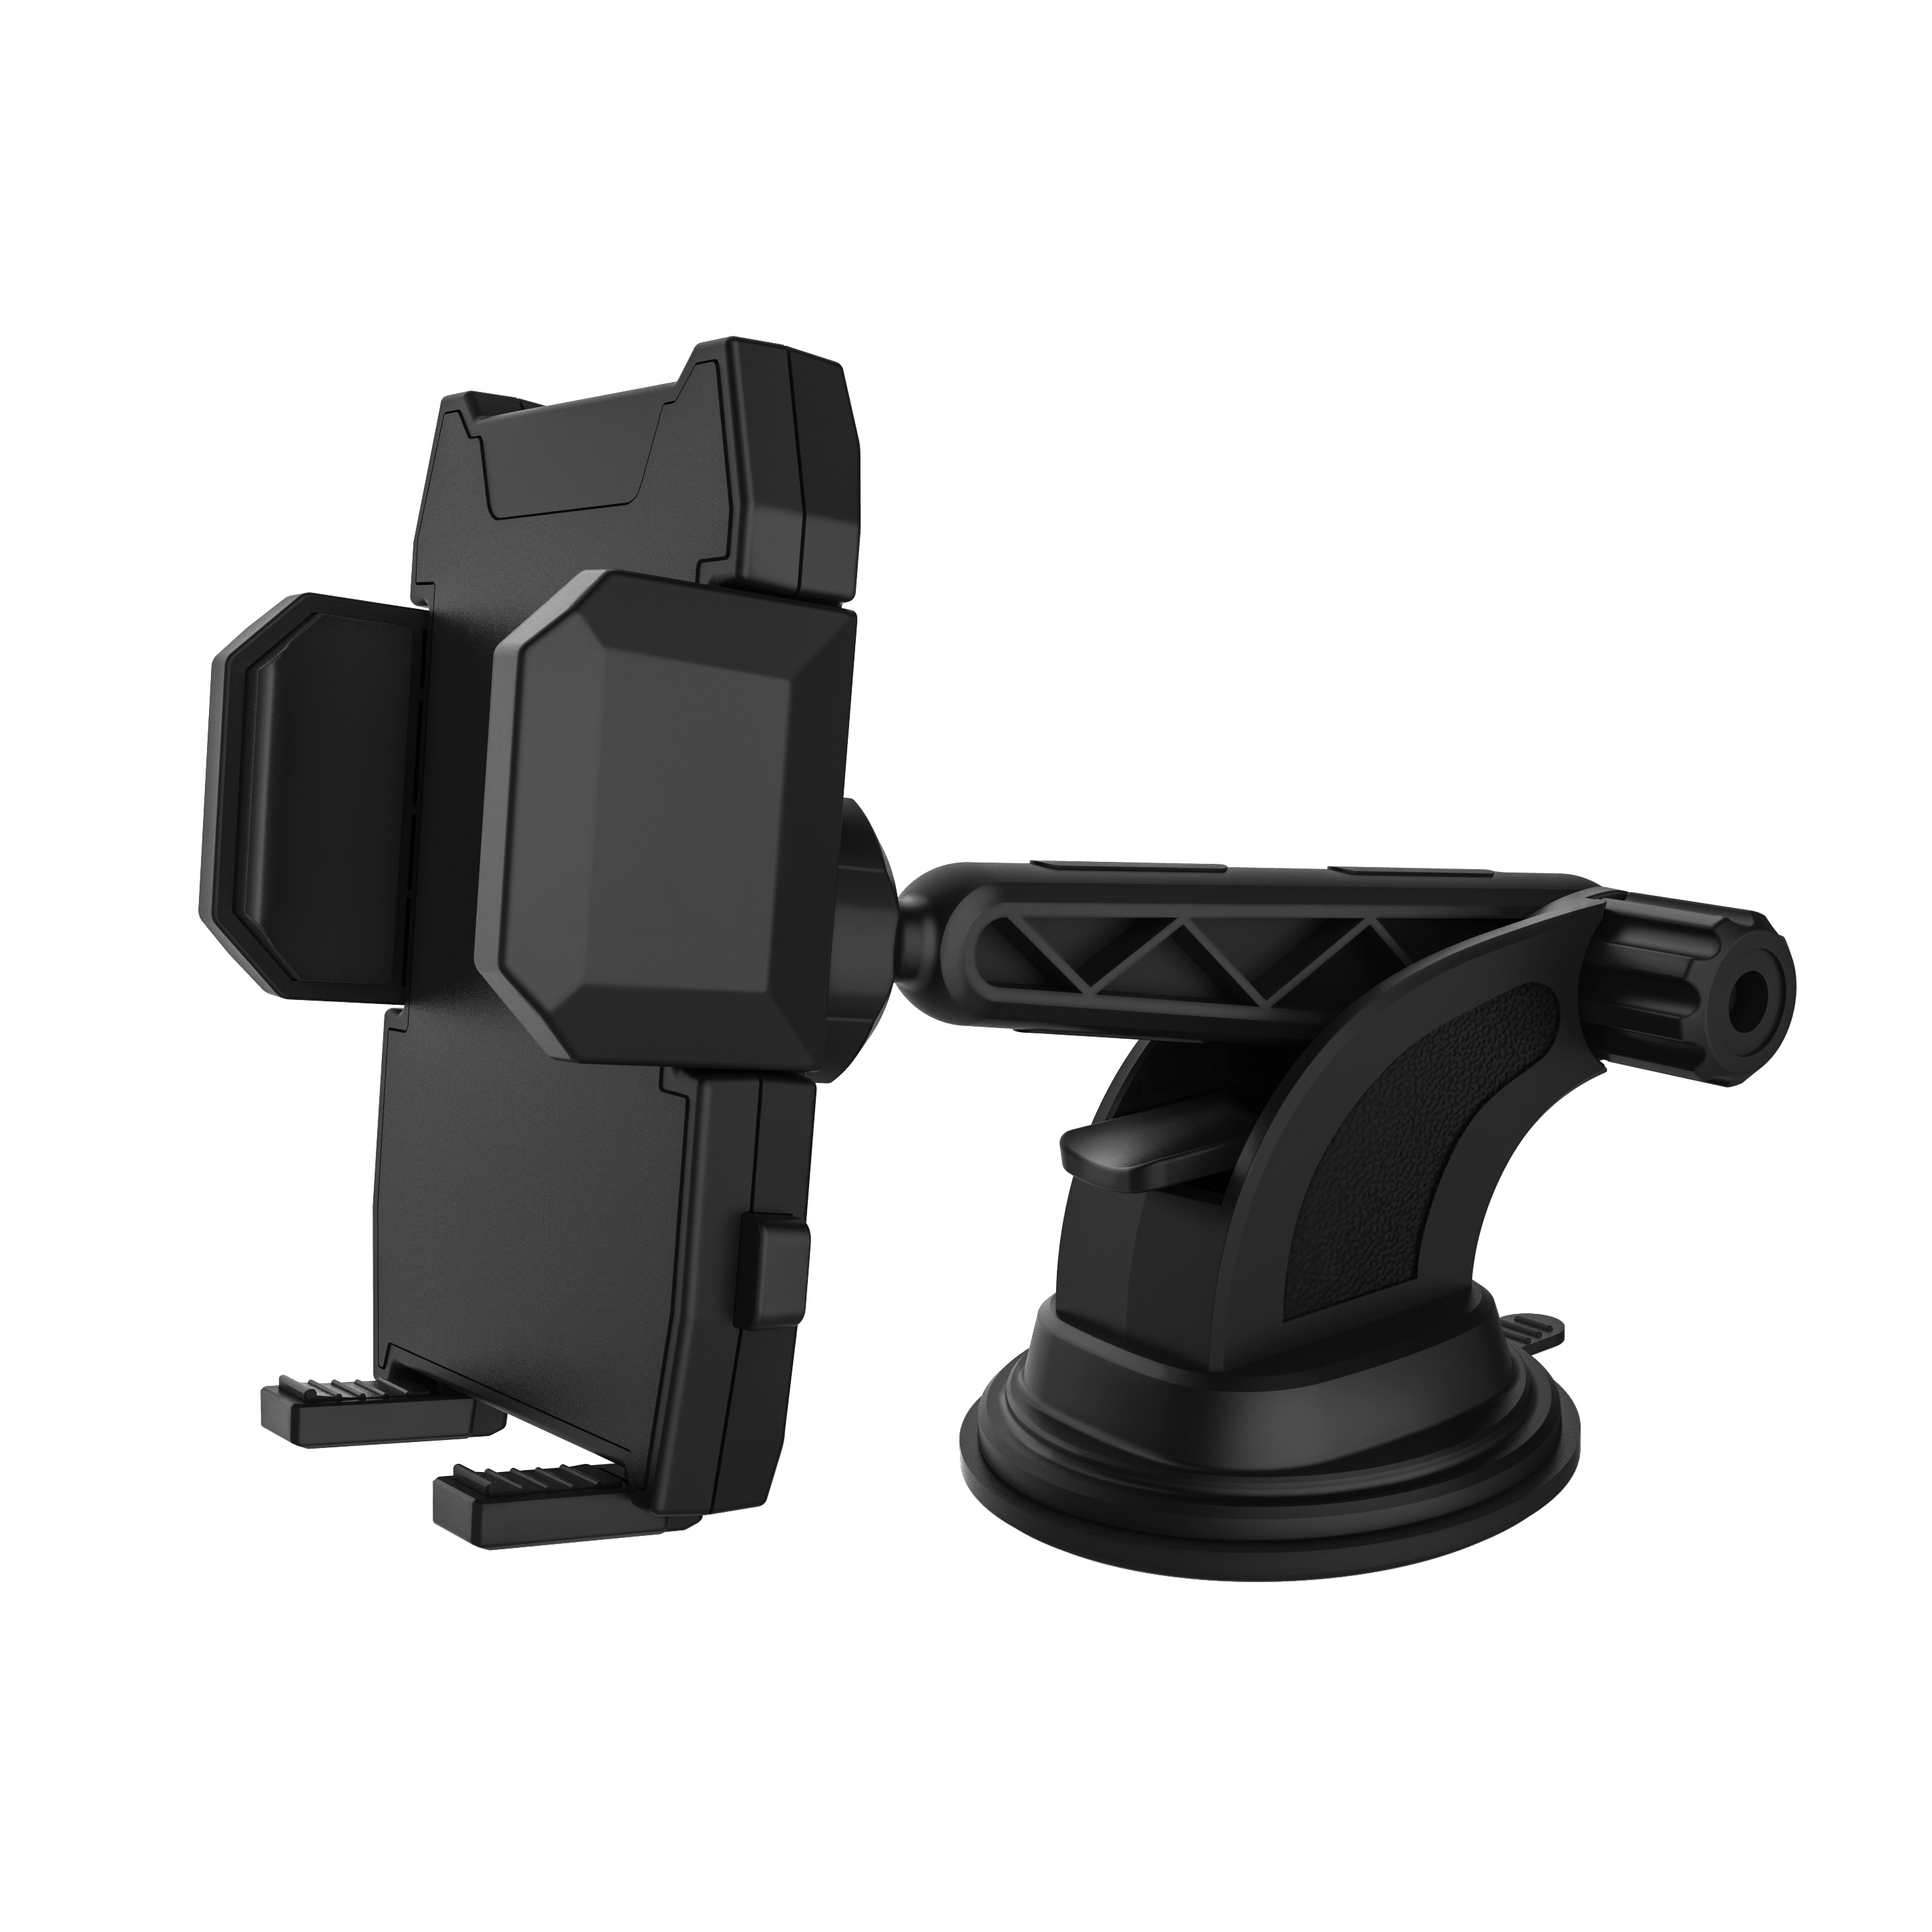 High Quality Universal 360 Degree strong suction car dashboard phone holder